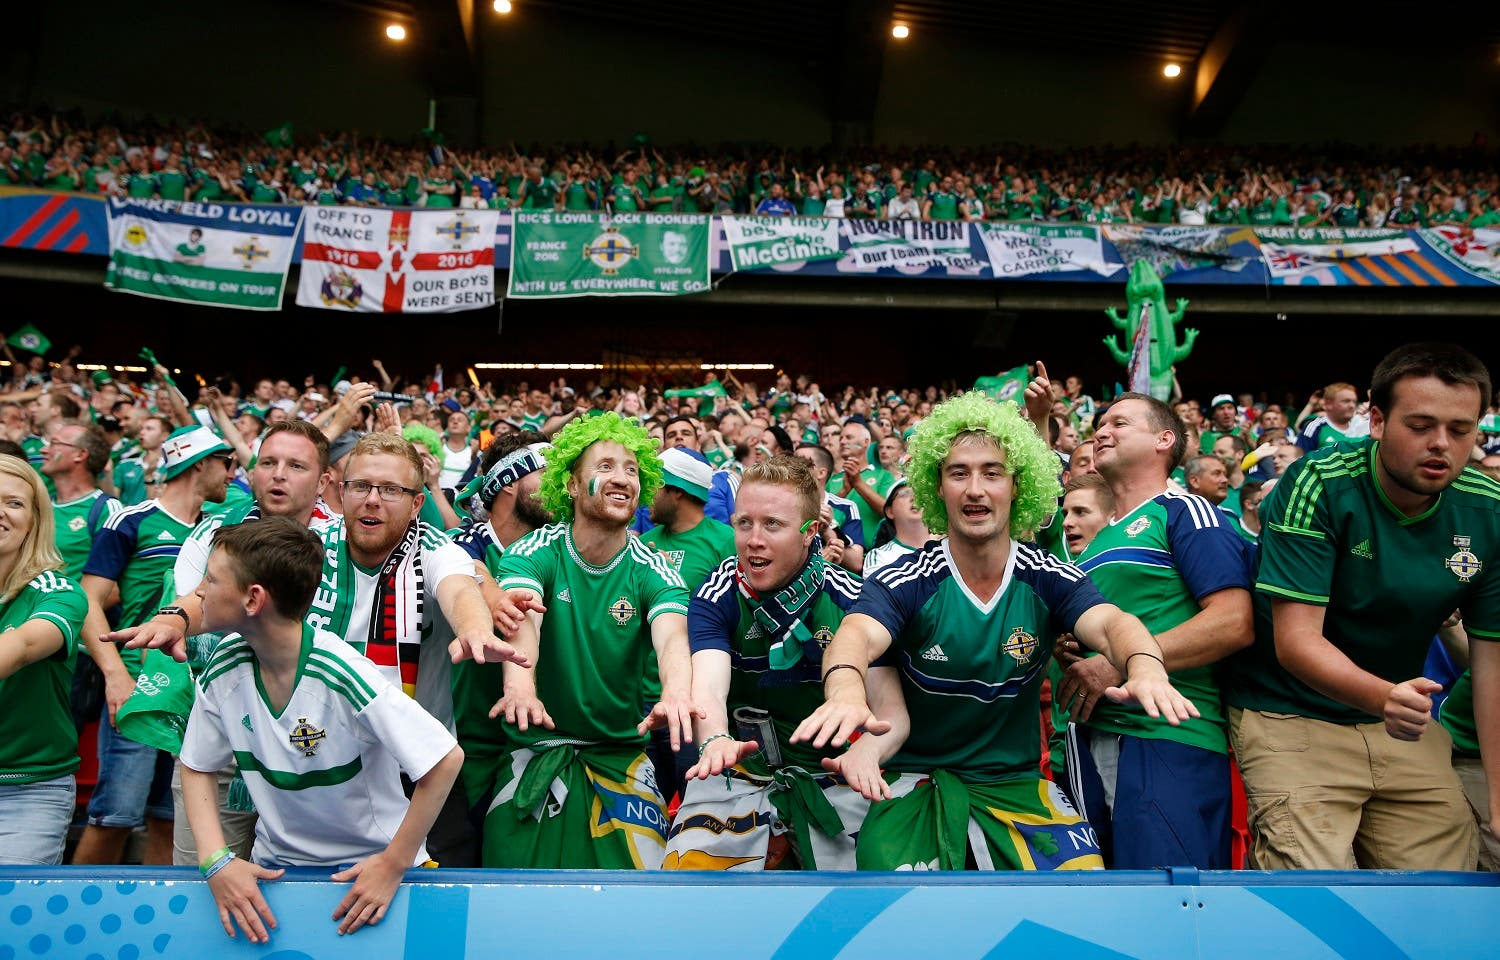 Northern Ireland fans celebrating after the match against Germany. (Reuters)